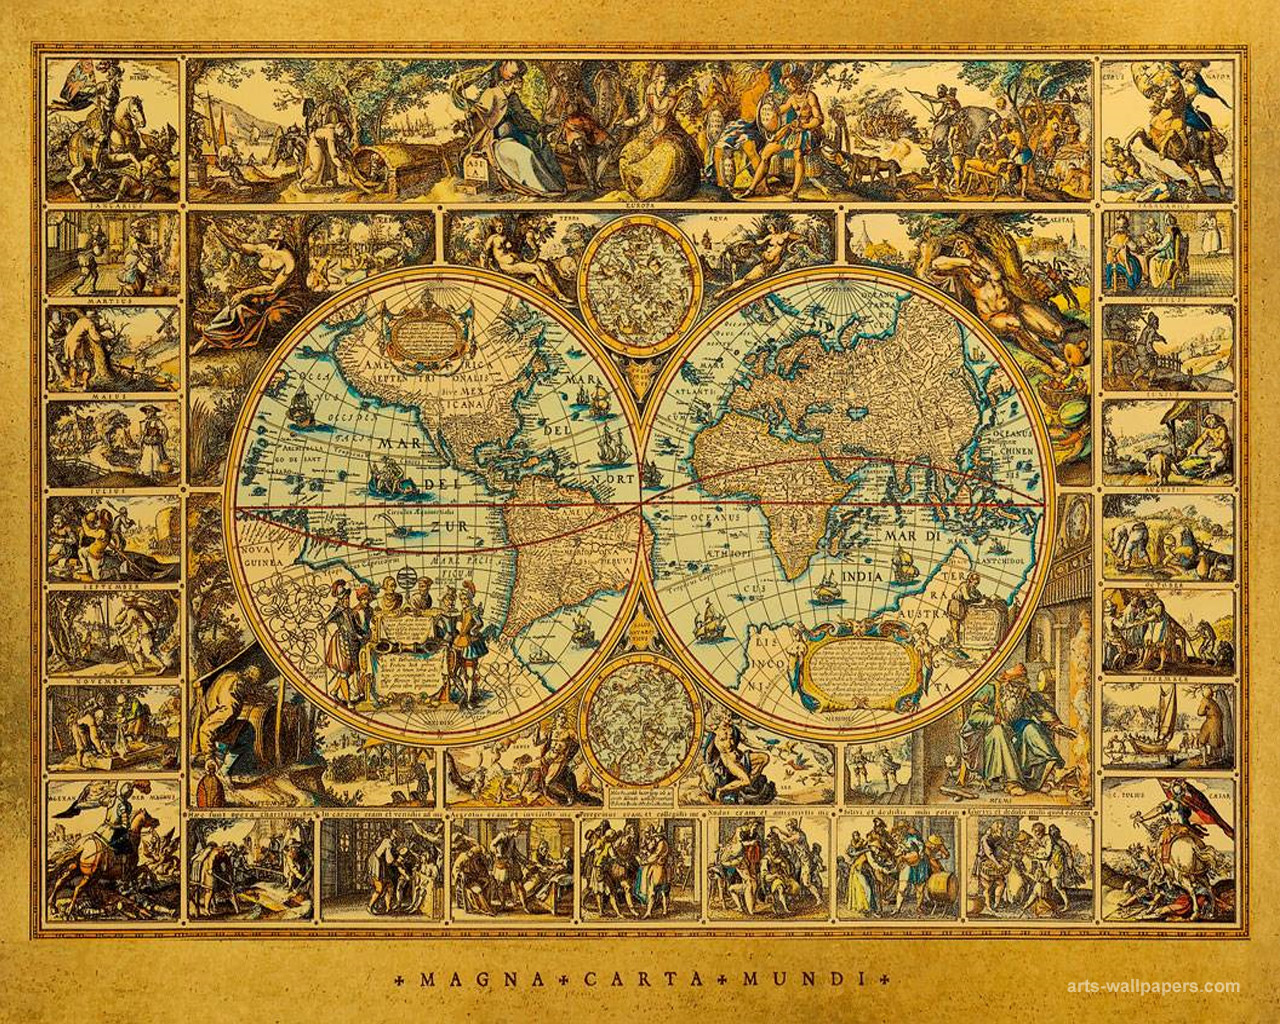 Old world map wallpaper wallpapersafari world antique map wallpaper art print poster art wallpapers 1280x1024 gumiabroncs Choice Image